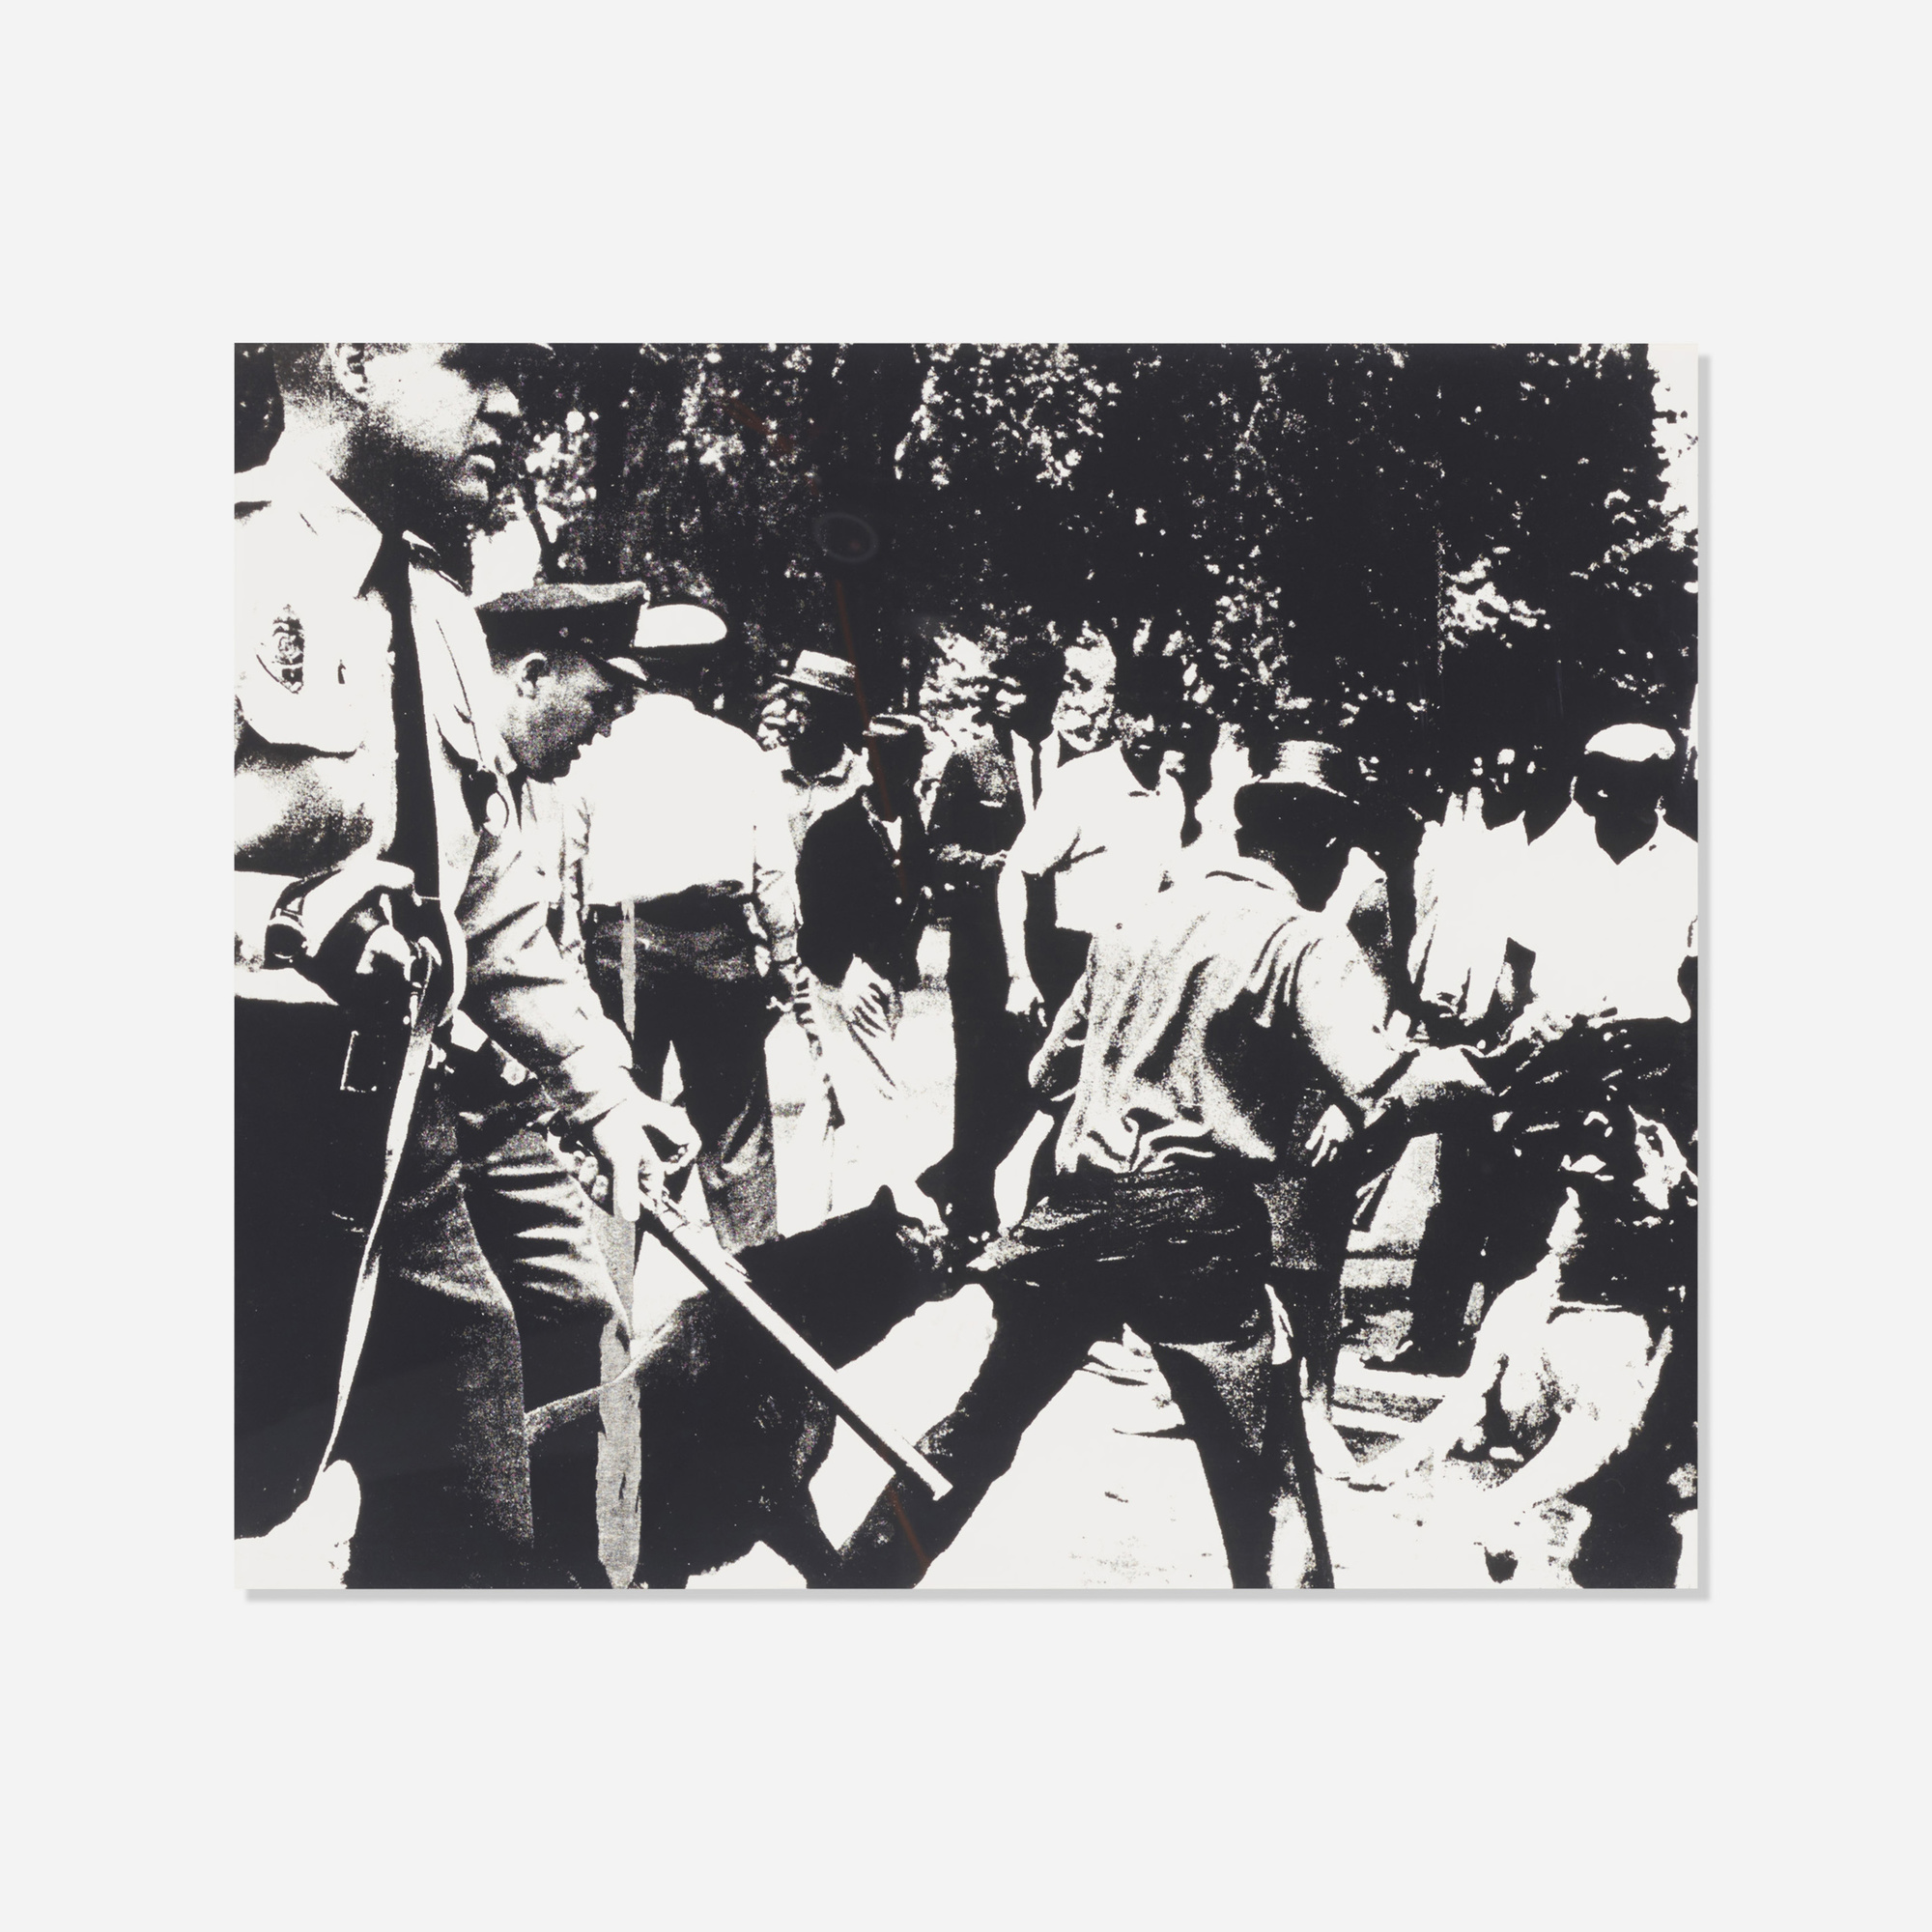 203: Andy Warhol / Birmingham Race Riot (from the Ten Works X Ten Painters portfolio) (1 of 1)